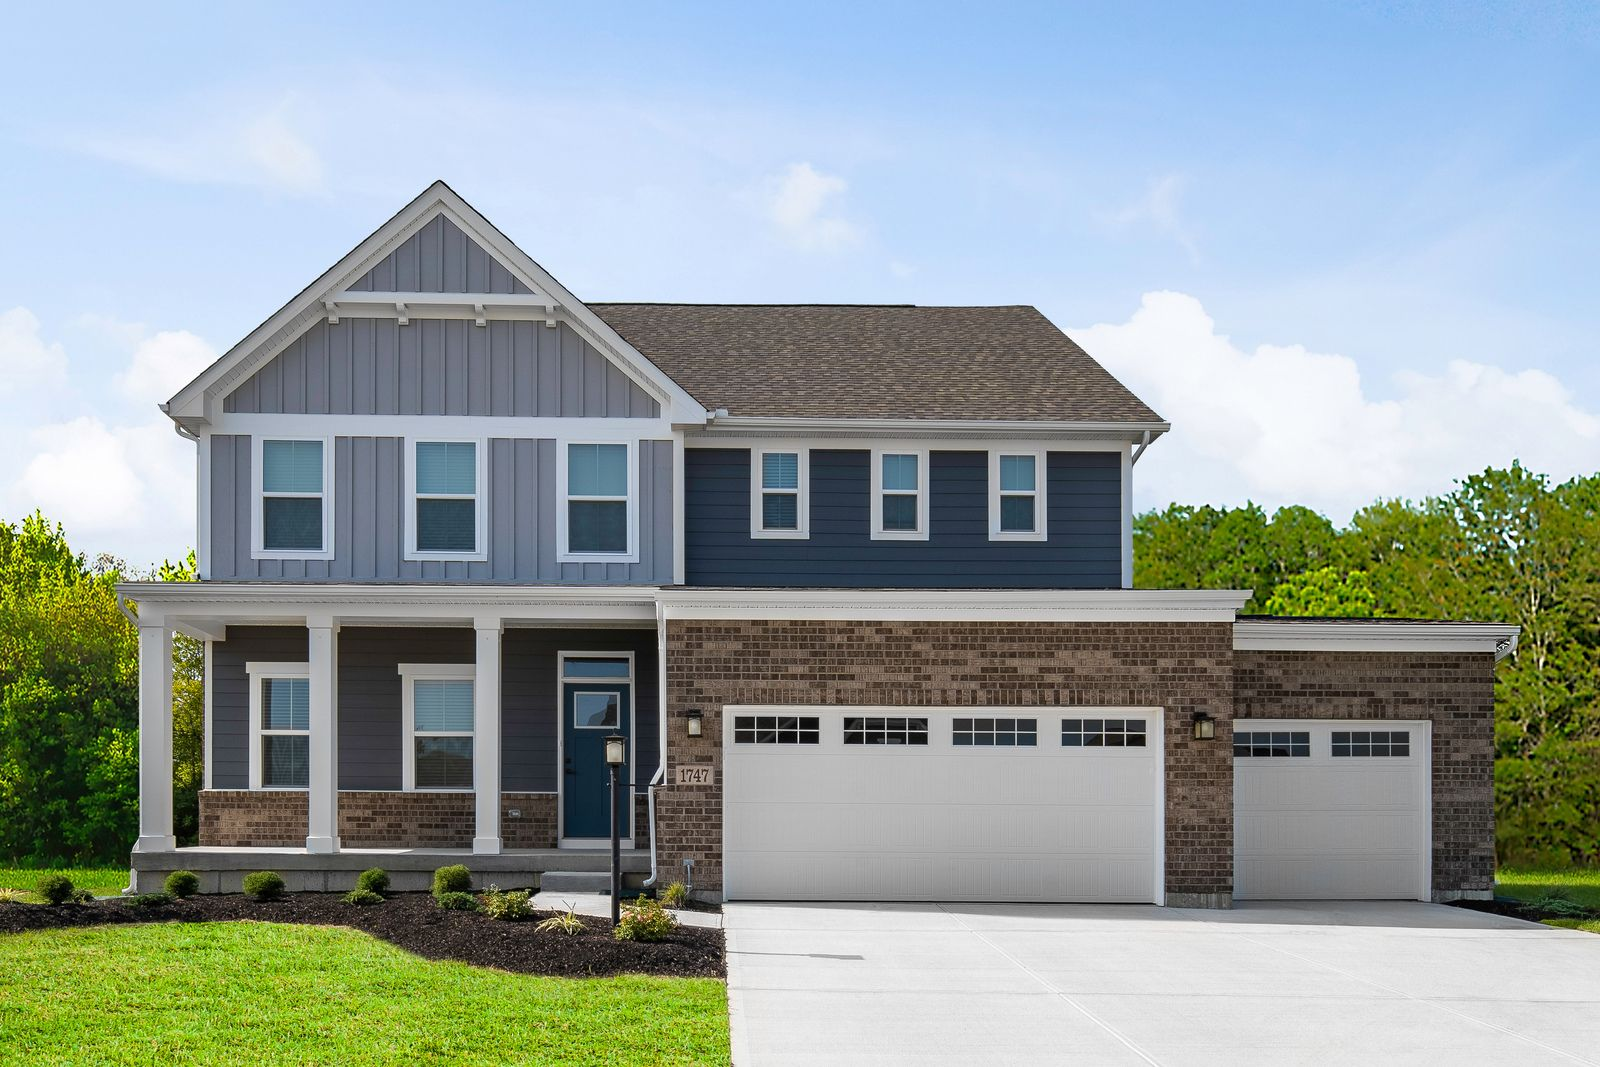 Welcome Home to Creekside at Winding Creek in Centerville School District